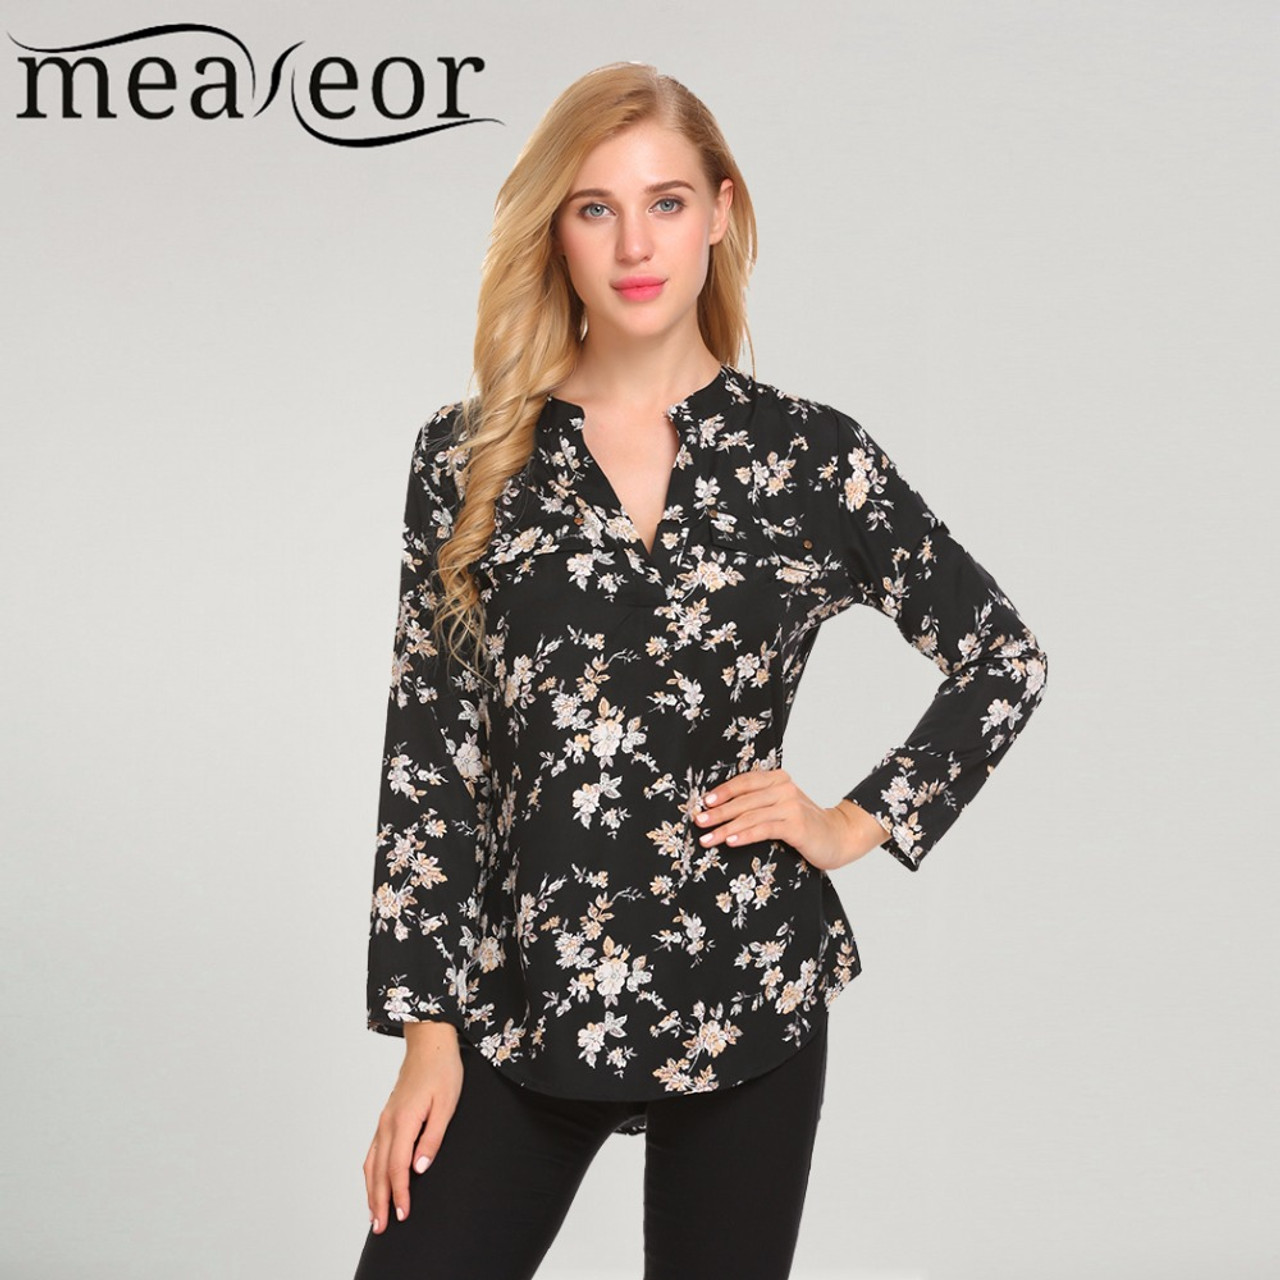 115bc76b Meaneor Vintage Blouses Women Roll-Up Cuffed Sleeve Shirts Floral Print  Asymmetrical Blouse Casual V ...